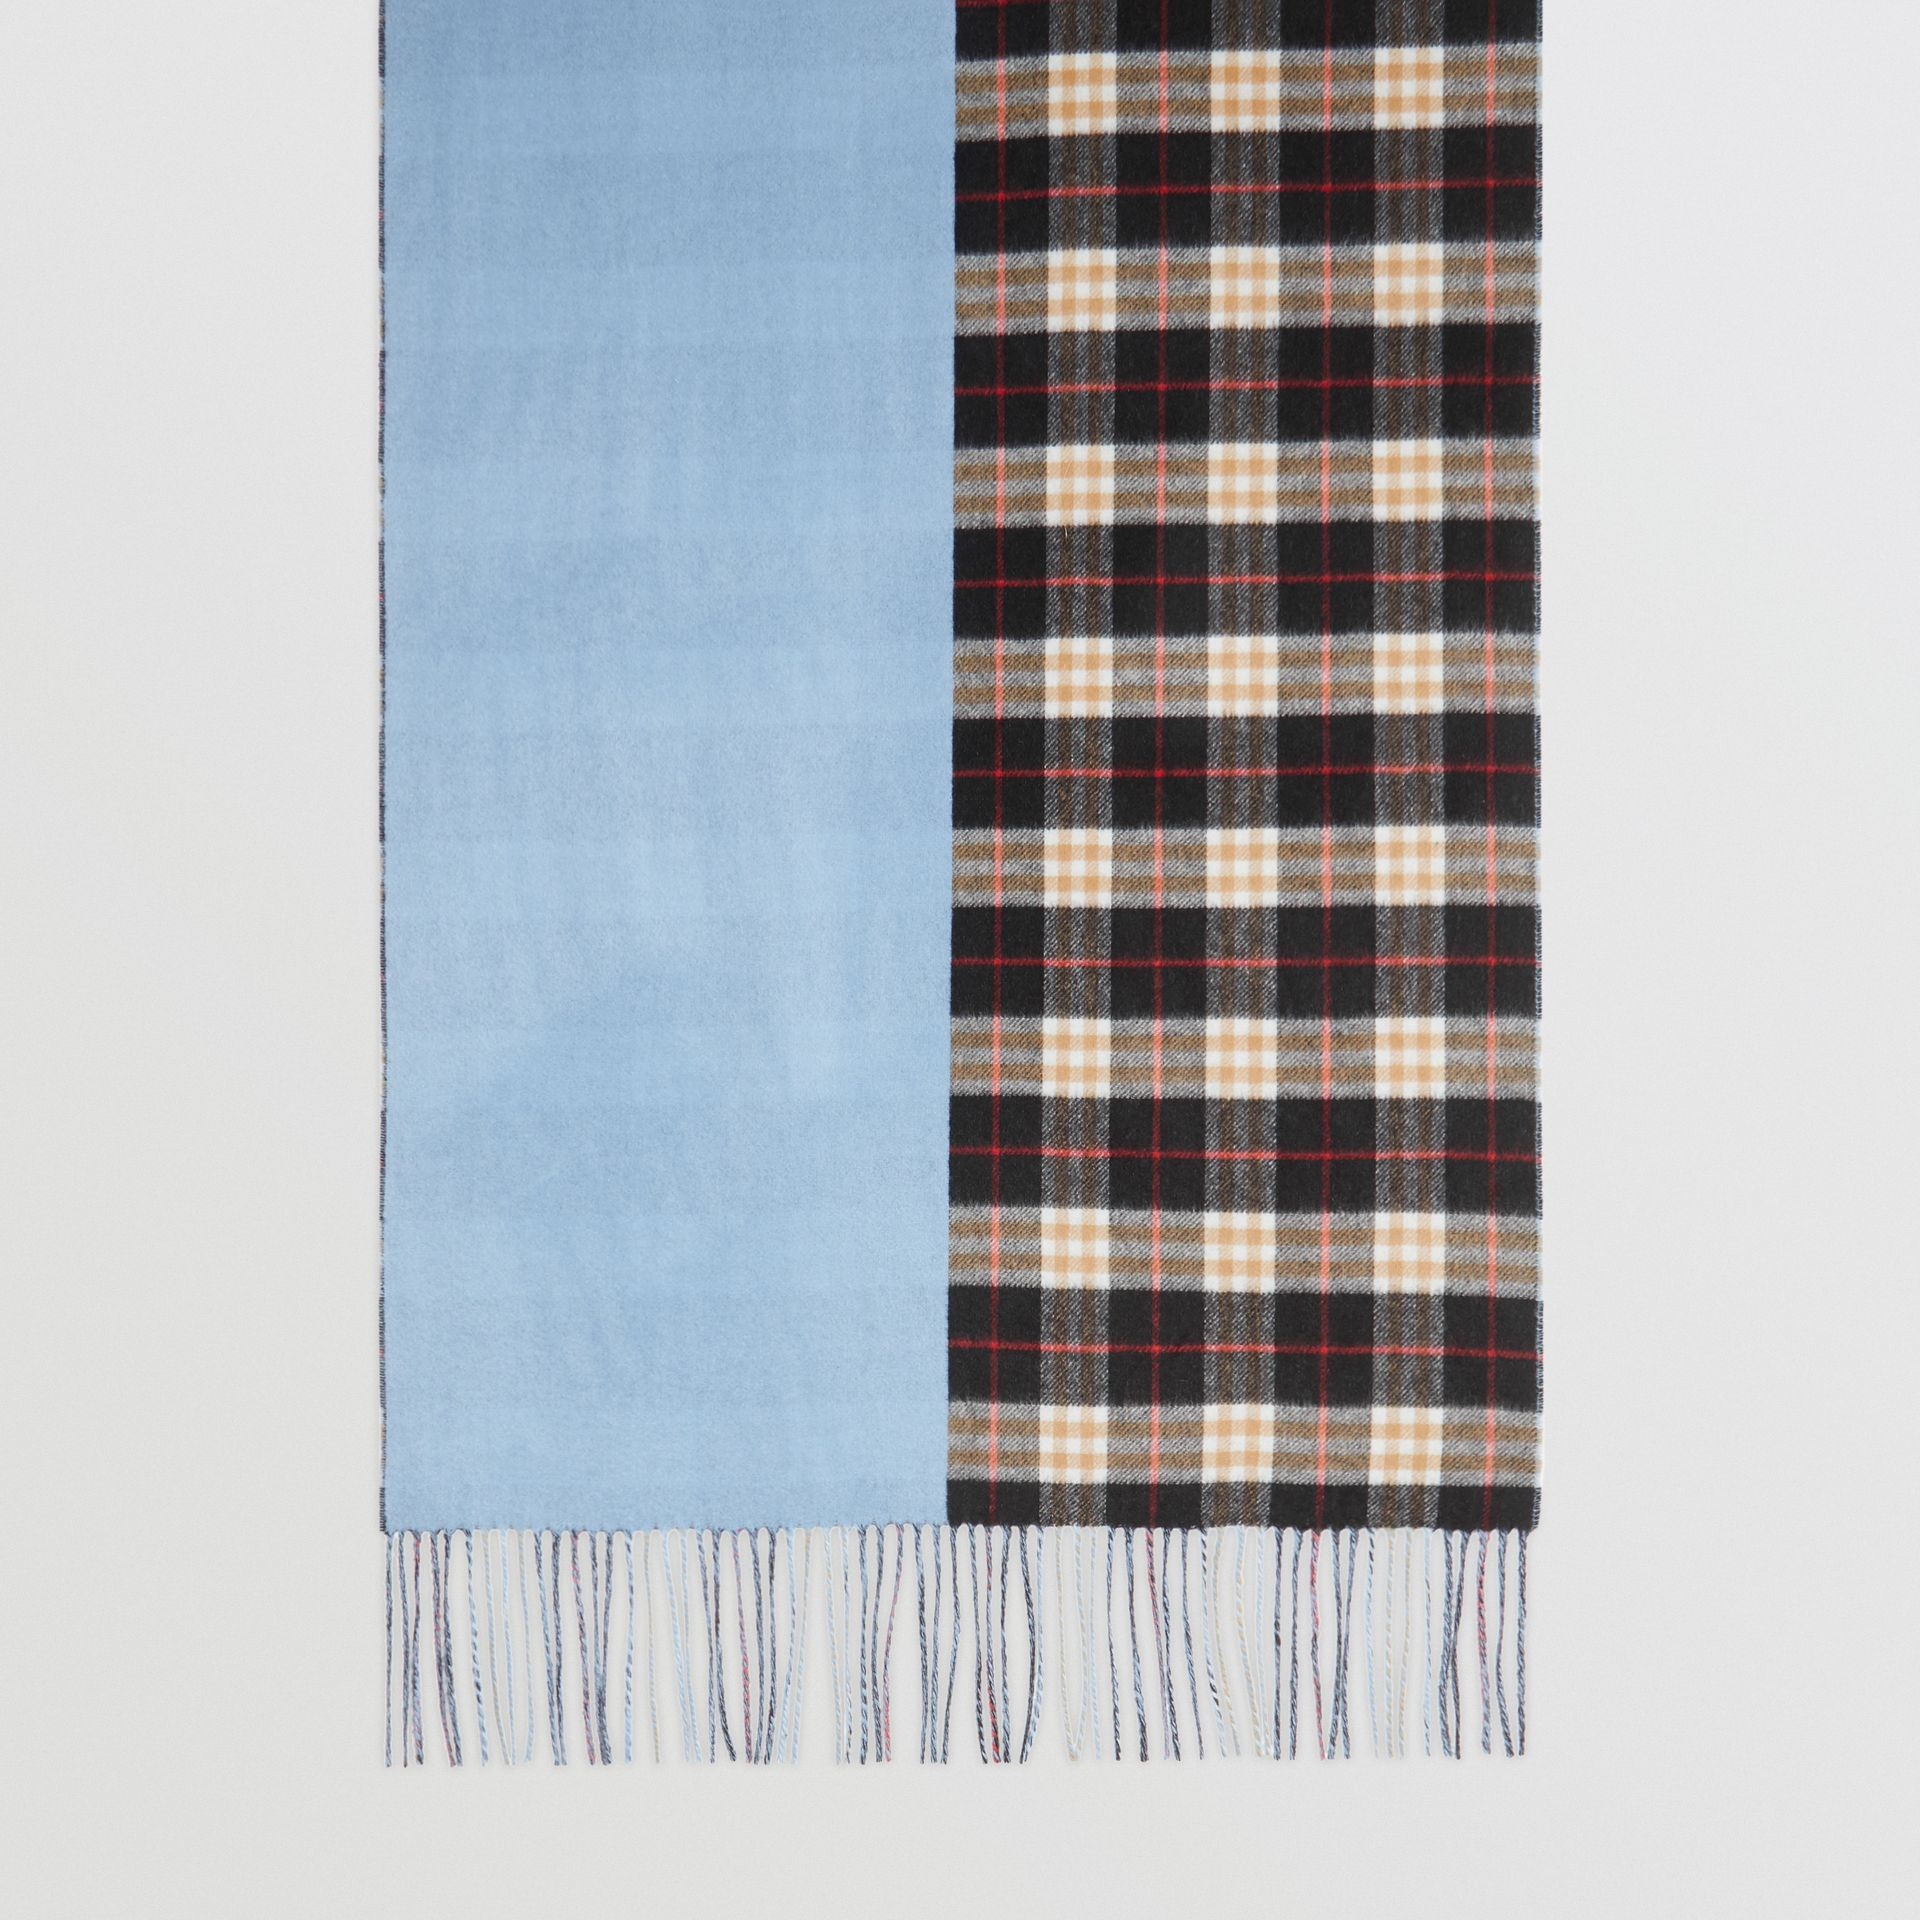 Colour Block Vintage Check Cashmere Scarf in Pale Air Force Blue | Burberry Singapore - gallery image 2